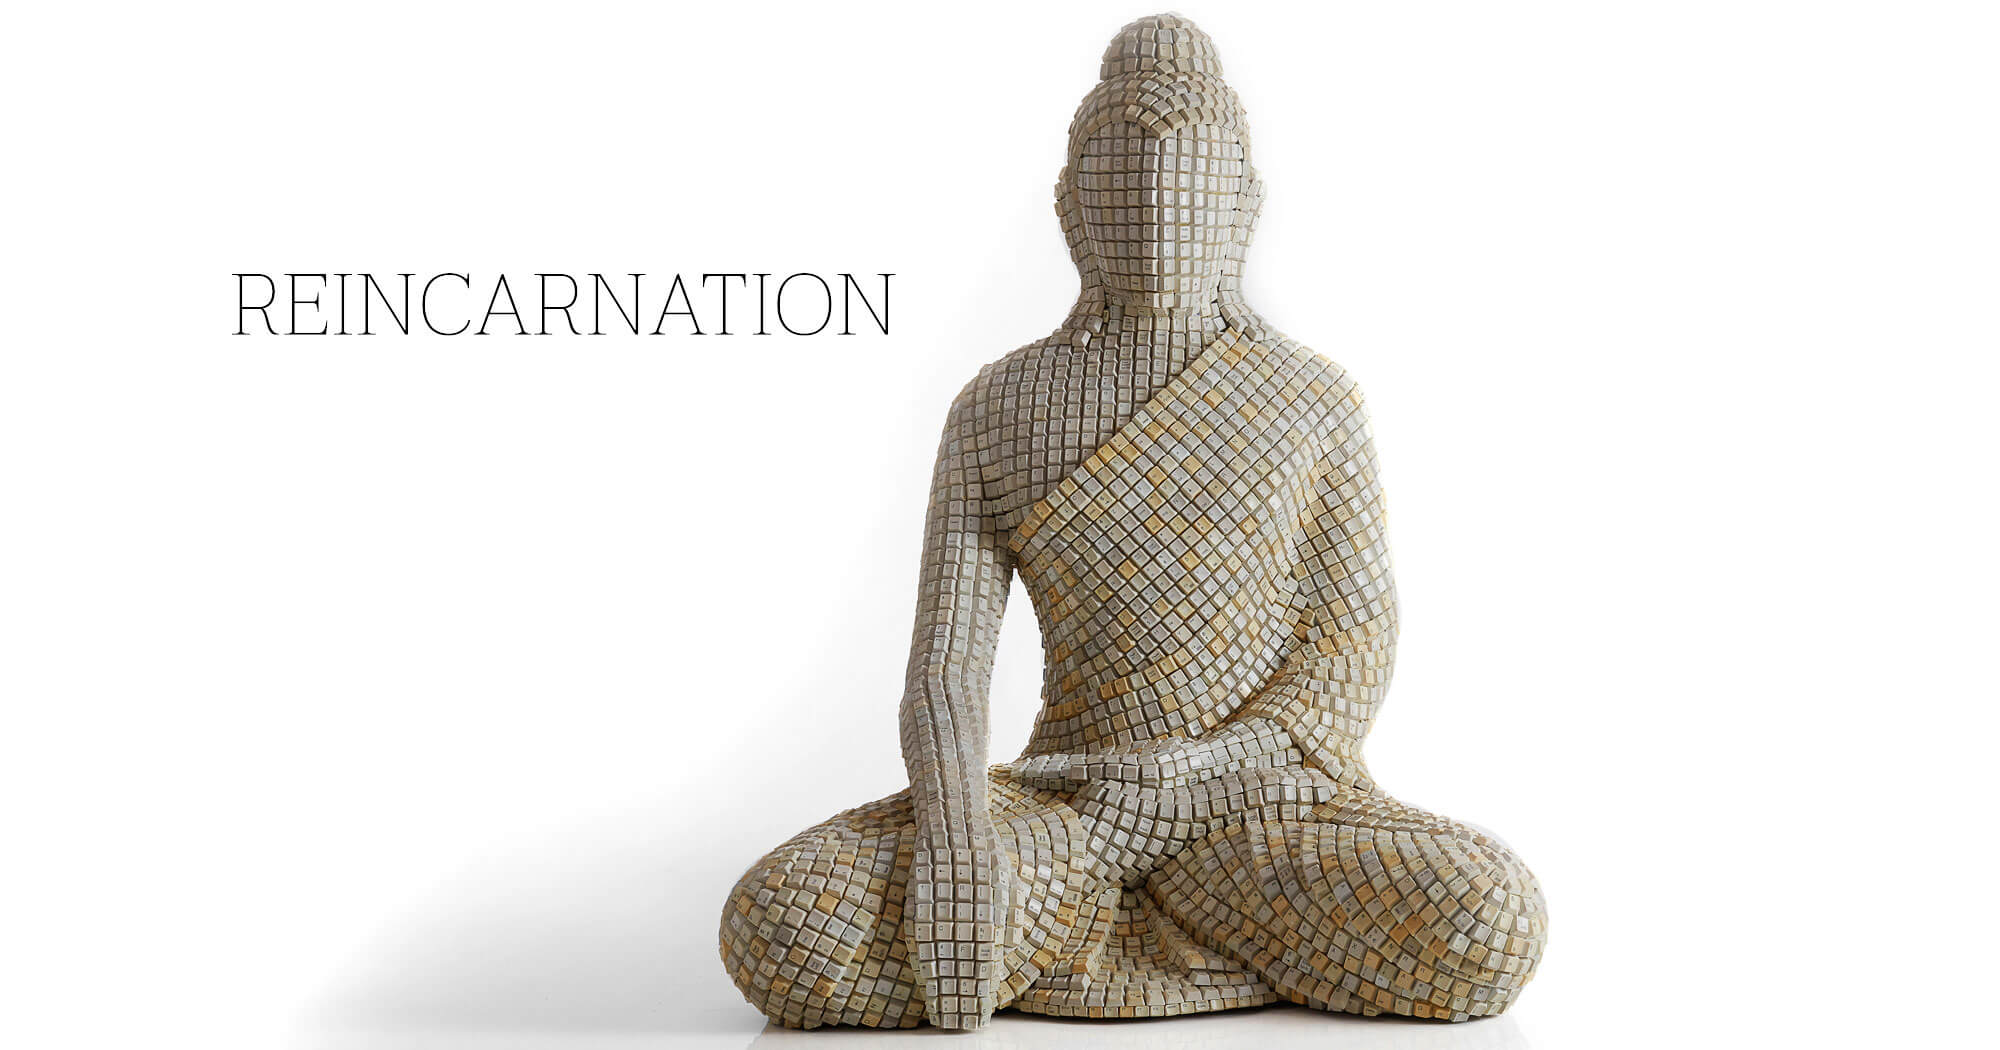 Sangeeta Abhat reincarnation buddha sculpture, sculpted by using keyboards keys.